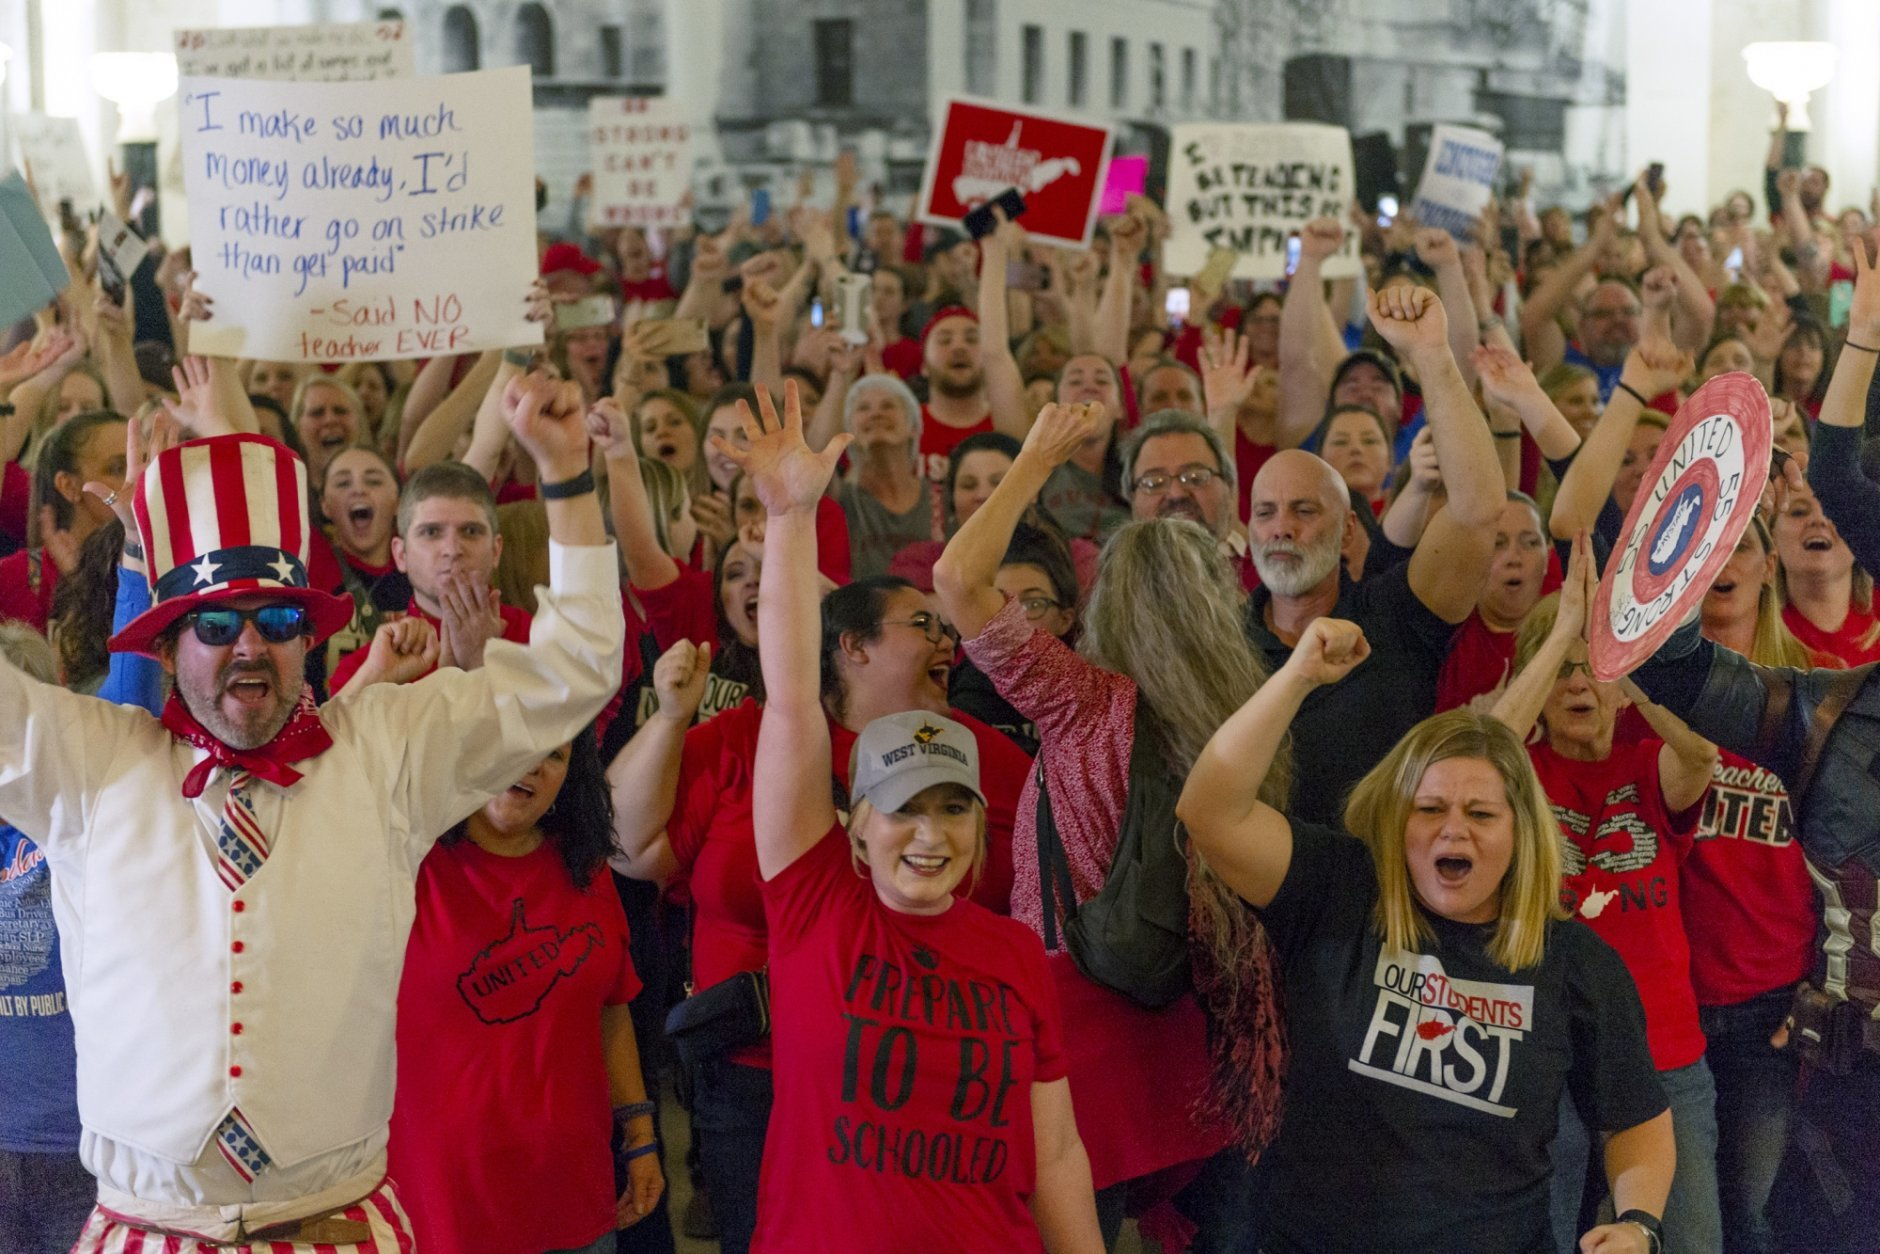 Teachers and school personnel celebrate after the House of Delegates passed a motion to postpone a vote on Senate Bill 451 indefinitely at the West Virginia State Capitol in Charleston, W.Va., during a statewide teachers' strike on Tuesday, Feb. 19, 2019. (Craig Hudson/Charleston Gazette-Mail via AP)